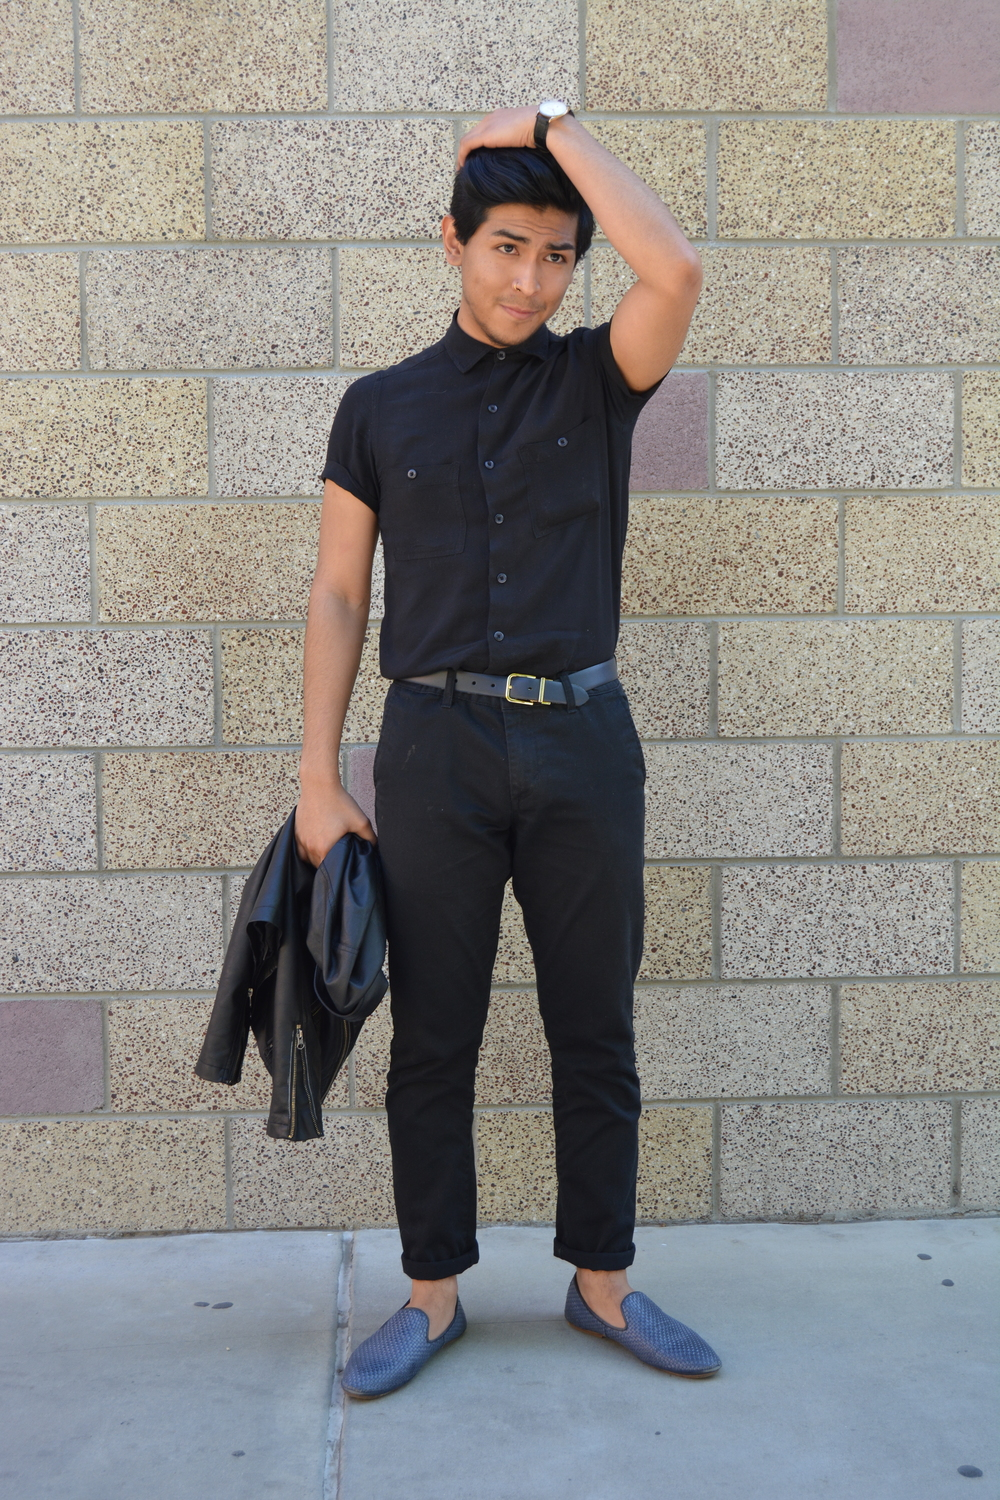 Jose Lopez is sporting a pair of Obey cuffed black dress pants, blue Asos shoes from House of Hounds and a black short sleeve two pocket shirt from American Apparel. Photo: Lauren Holmes